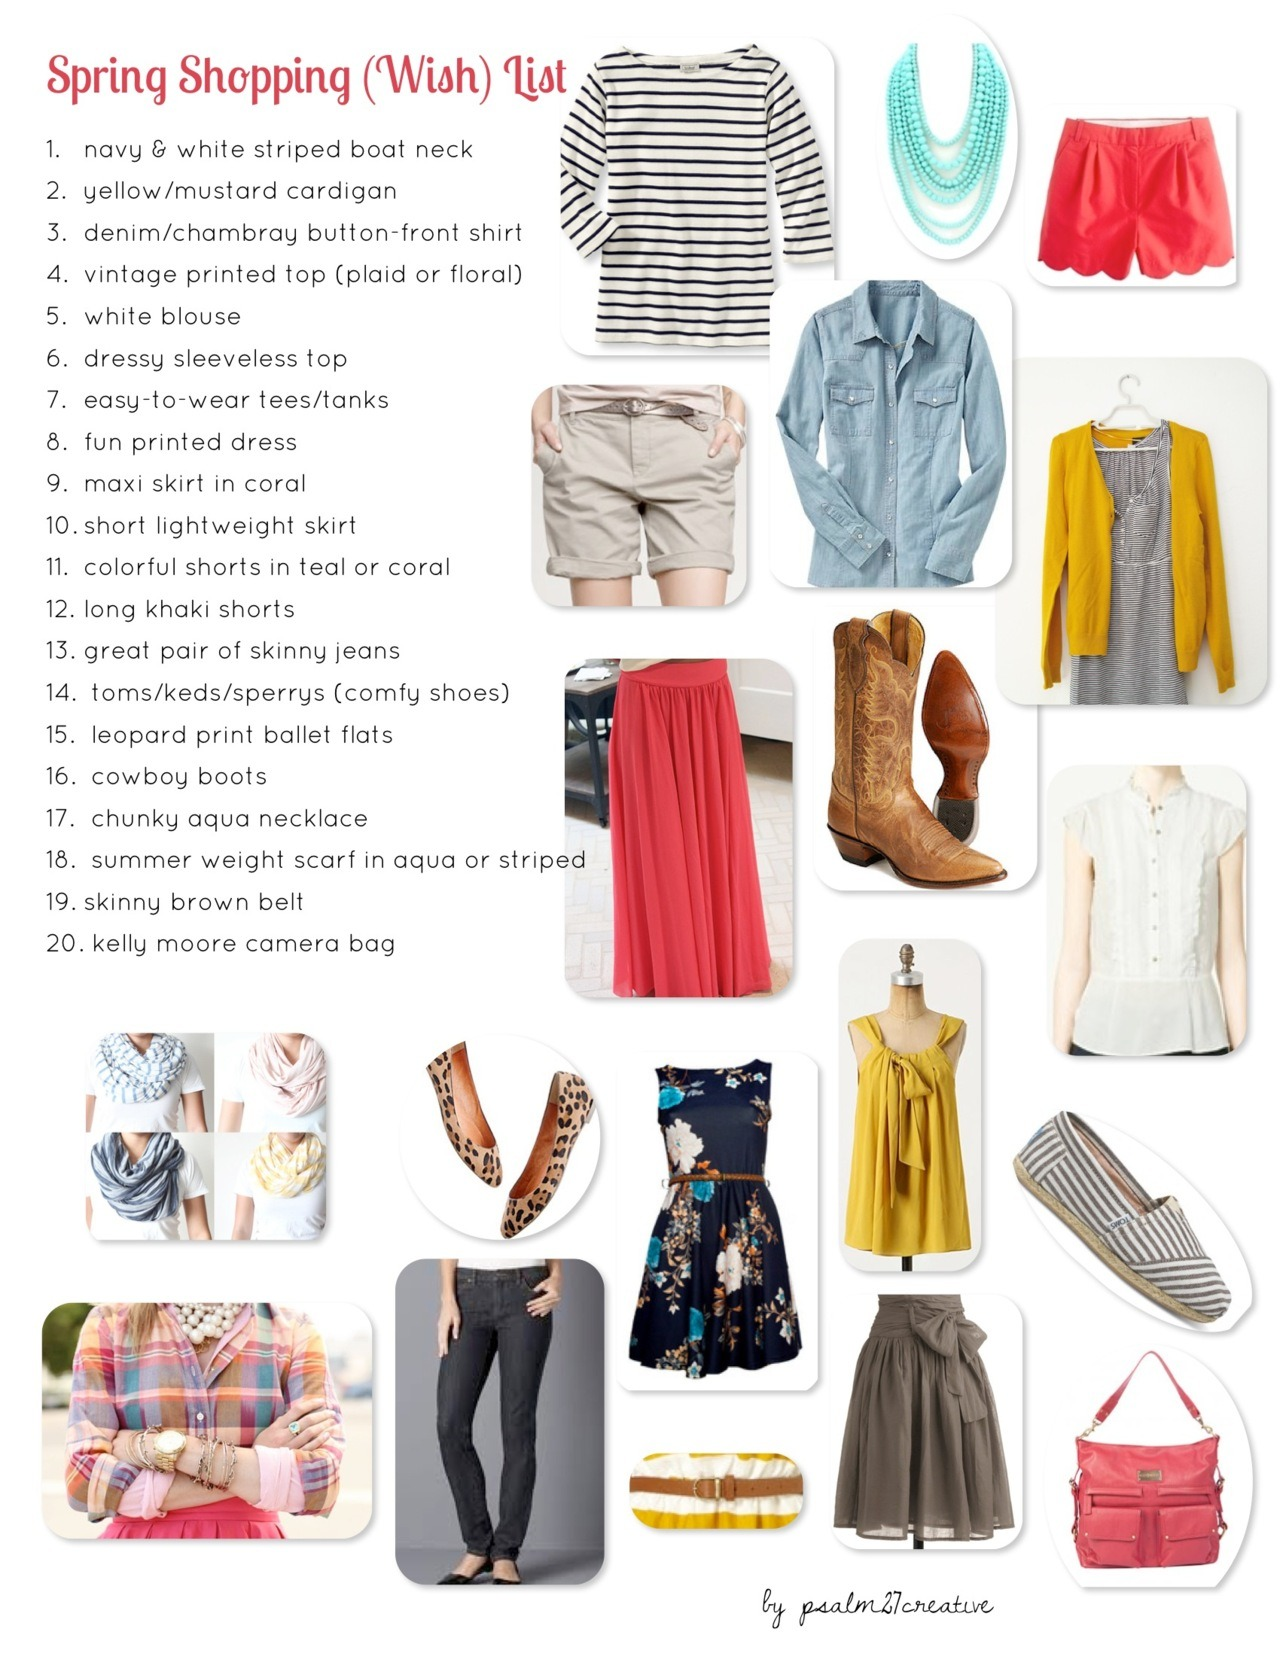 Spring Shopping (Wish) List  I have a confession to make. It has been a long while since I've been shopping, and the clothes in my closet are looking a little worse-for-the-wear. I am not usually the best at shopping for clothes. Sure, I am great at finding sales, and pretty good at shopping for my body type. But I have never had a real vision in terms of my wardrobe, and I've never been great at shopping strategically to fill in the gaps. Since I'm going to have to be super thrifty in updating my wardrobe this time around, I knew I needed to make a plan. So here it is, my spring shopping (wish) list for 2012 -  much thanks to pinterest. Now I just need to get shopping…wish me luck!